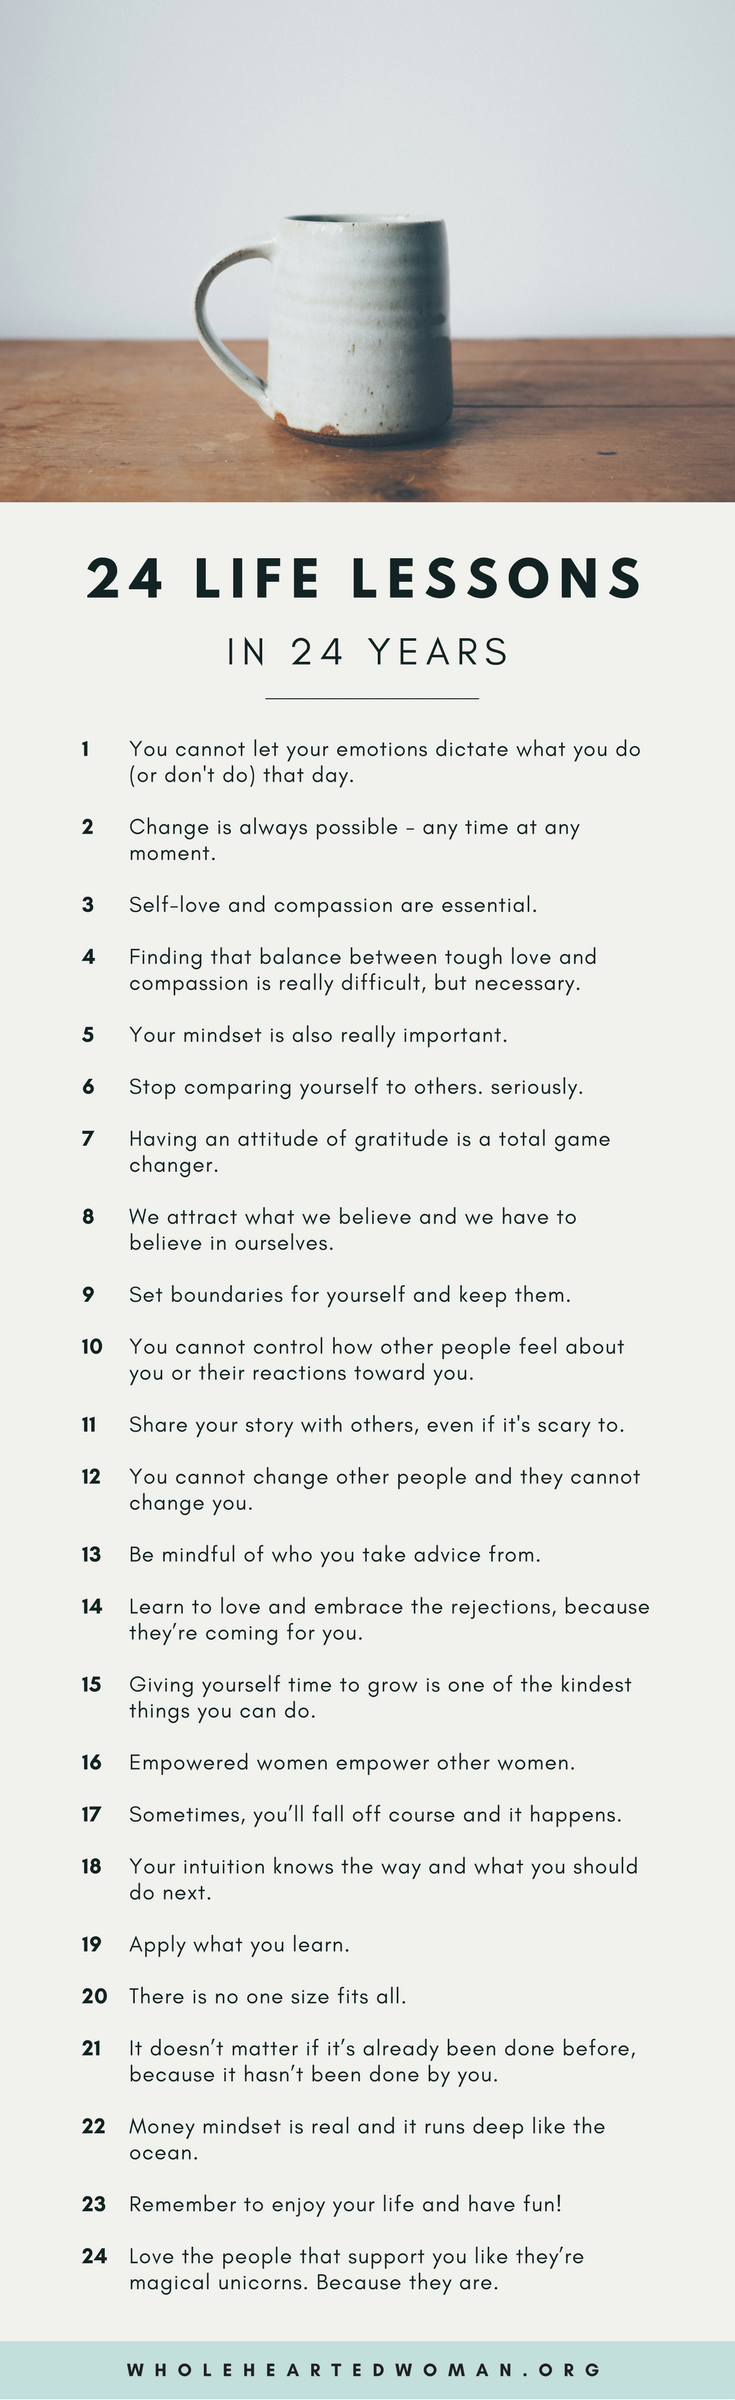 24 Life Lessons In 24 Years